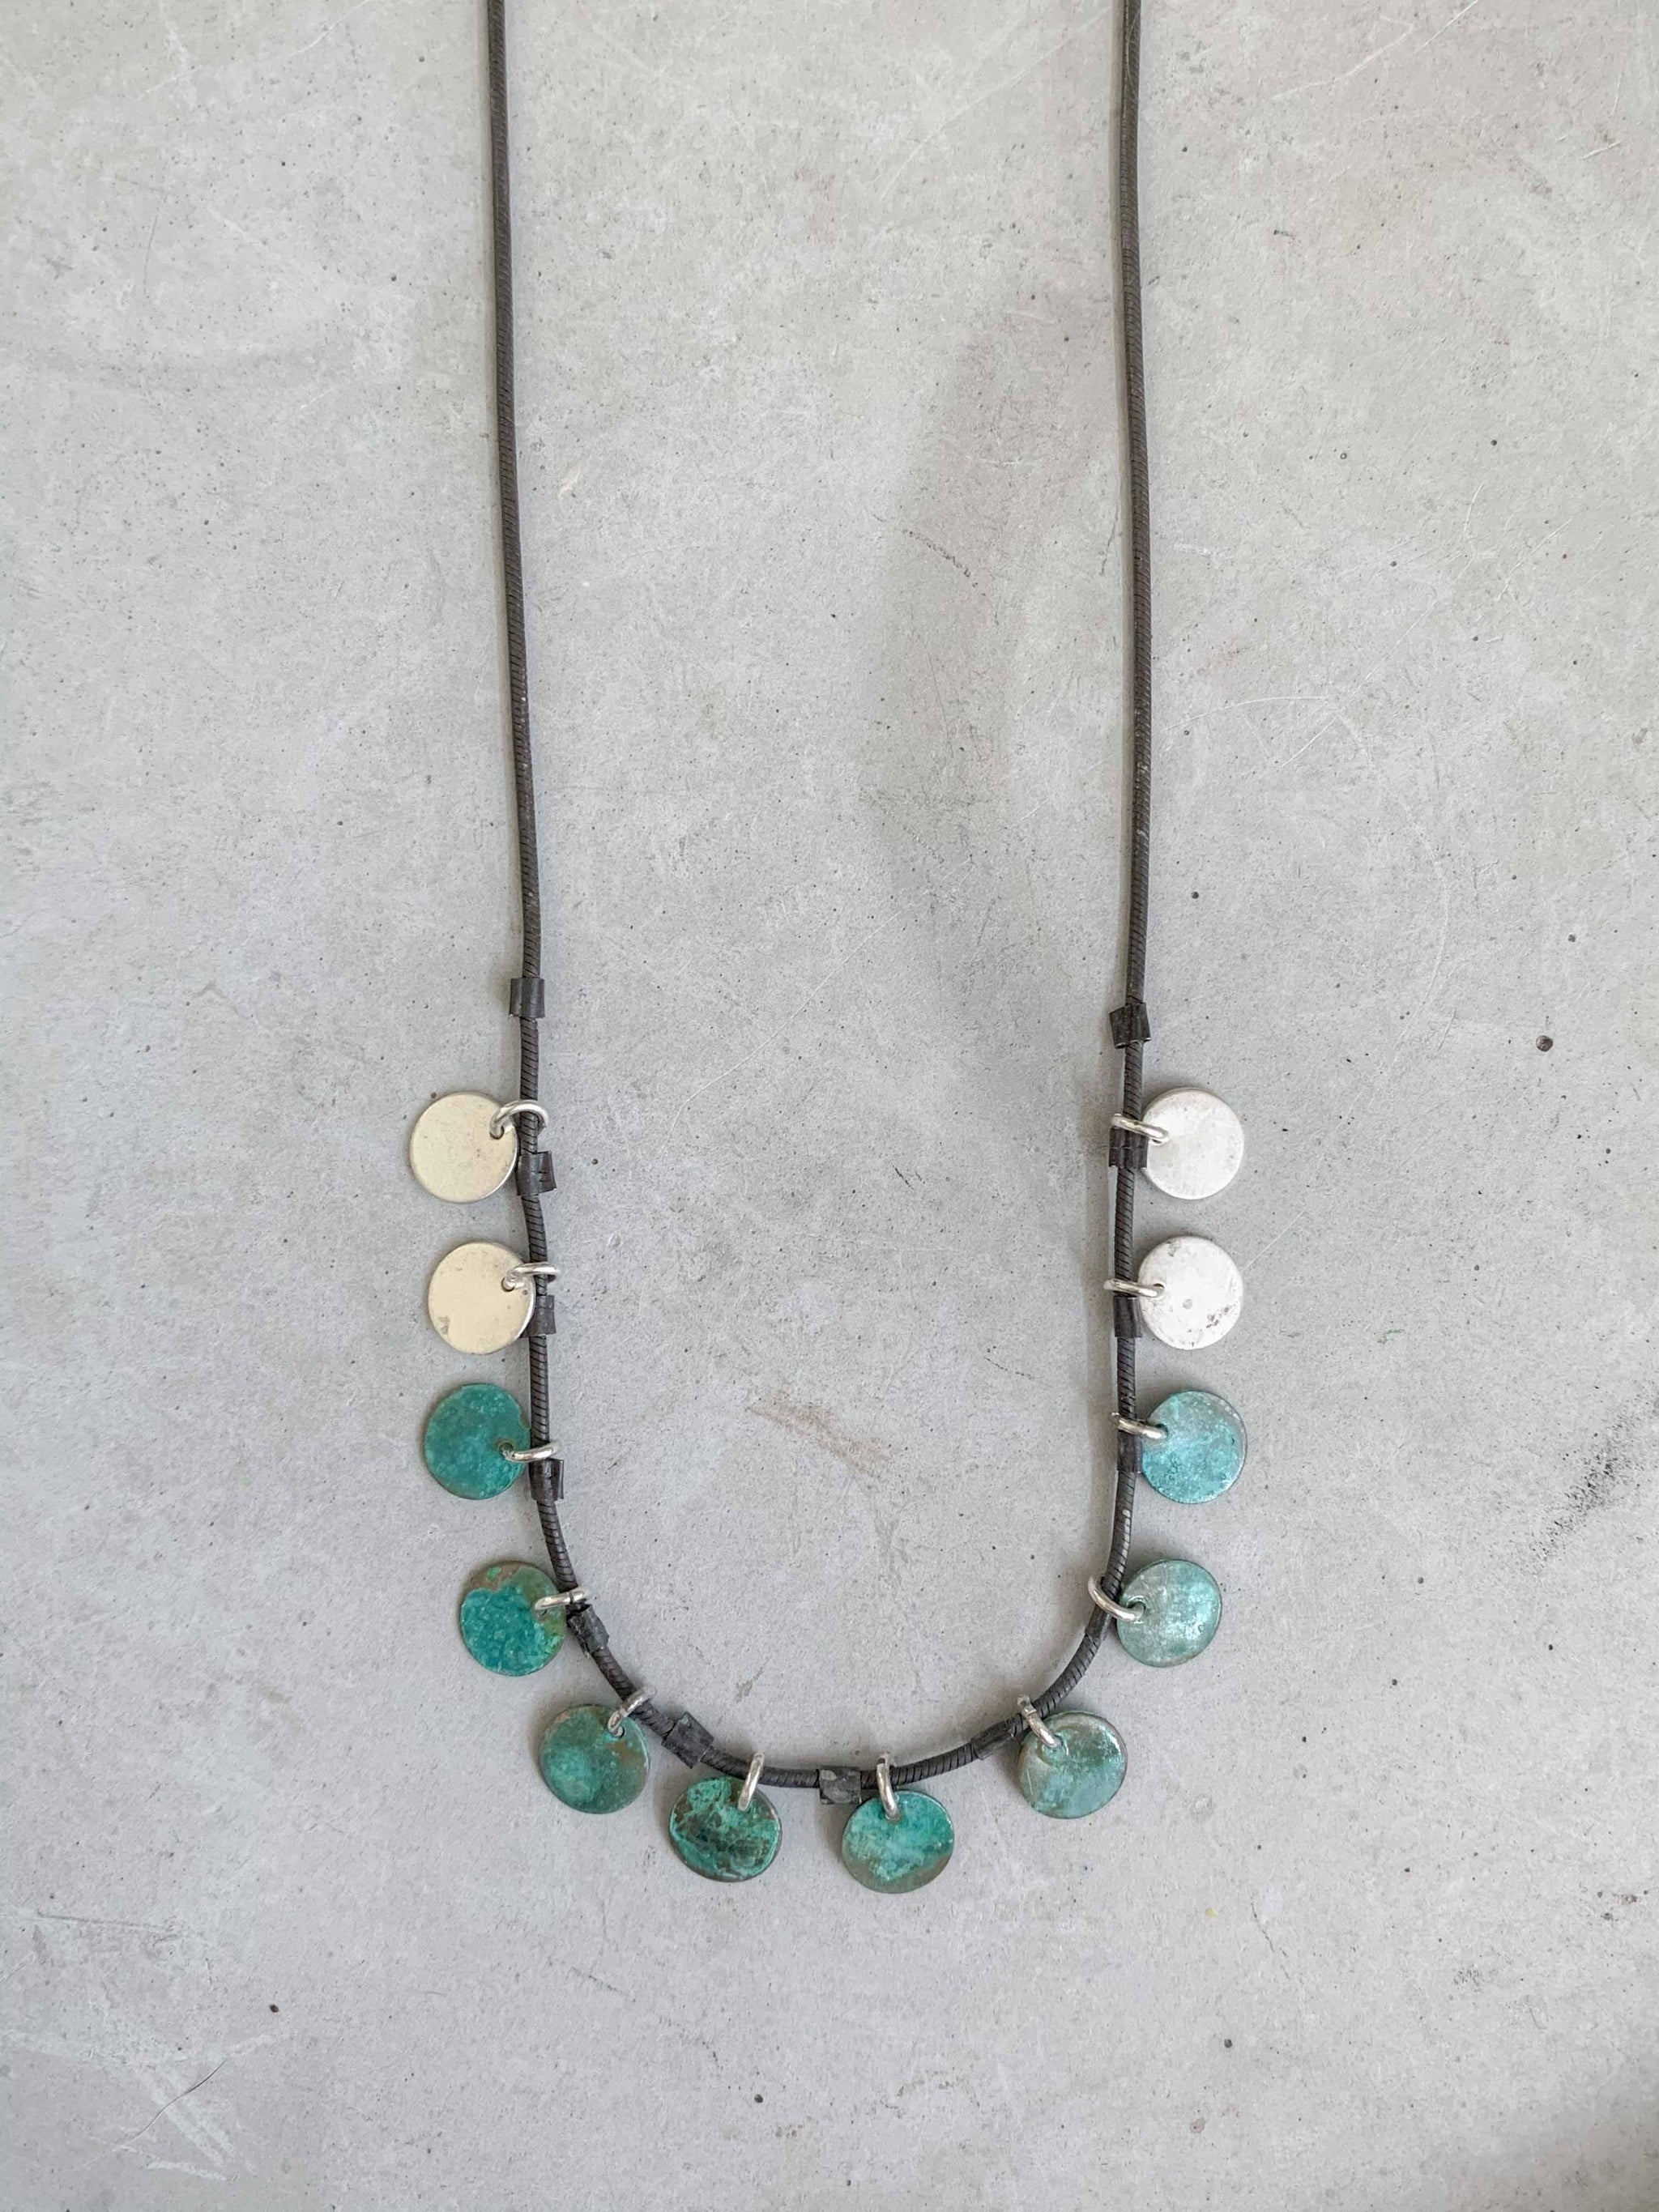 NIDRA NECKLACE